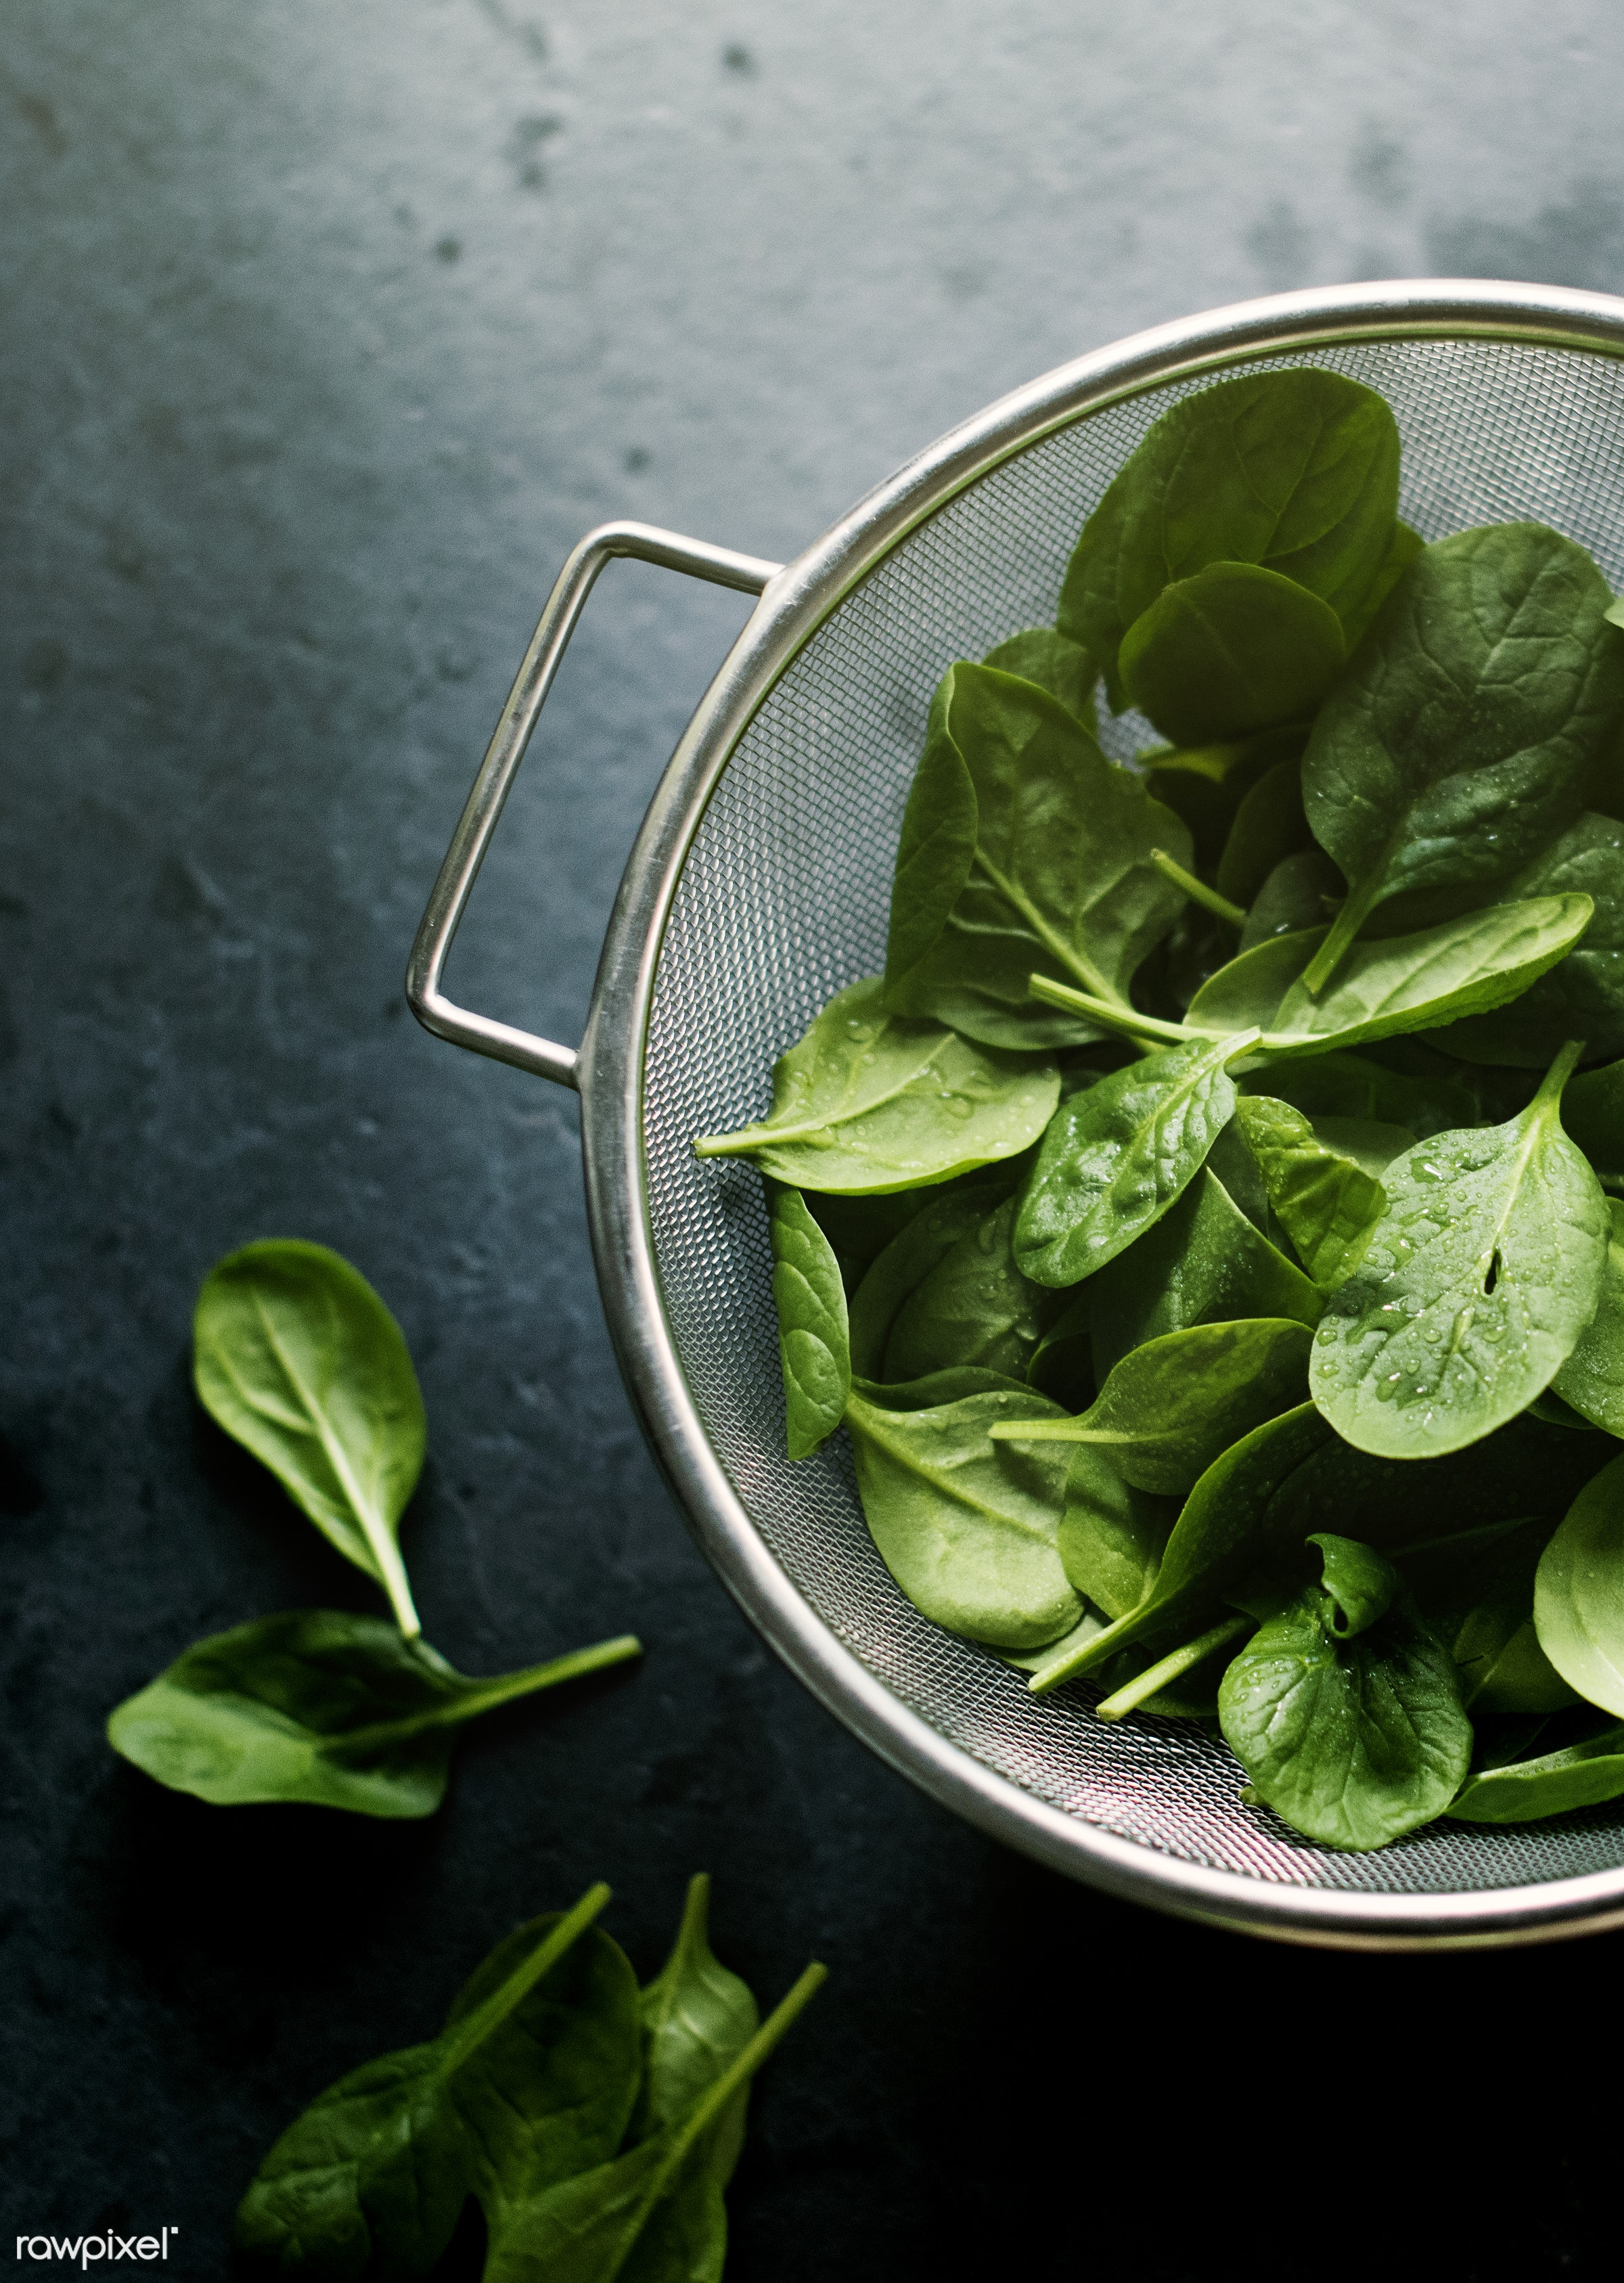 raw, plant, nobody, bowl, sieve, leaves, black background, real, organic, nature, fresh, food, background, spinach,...